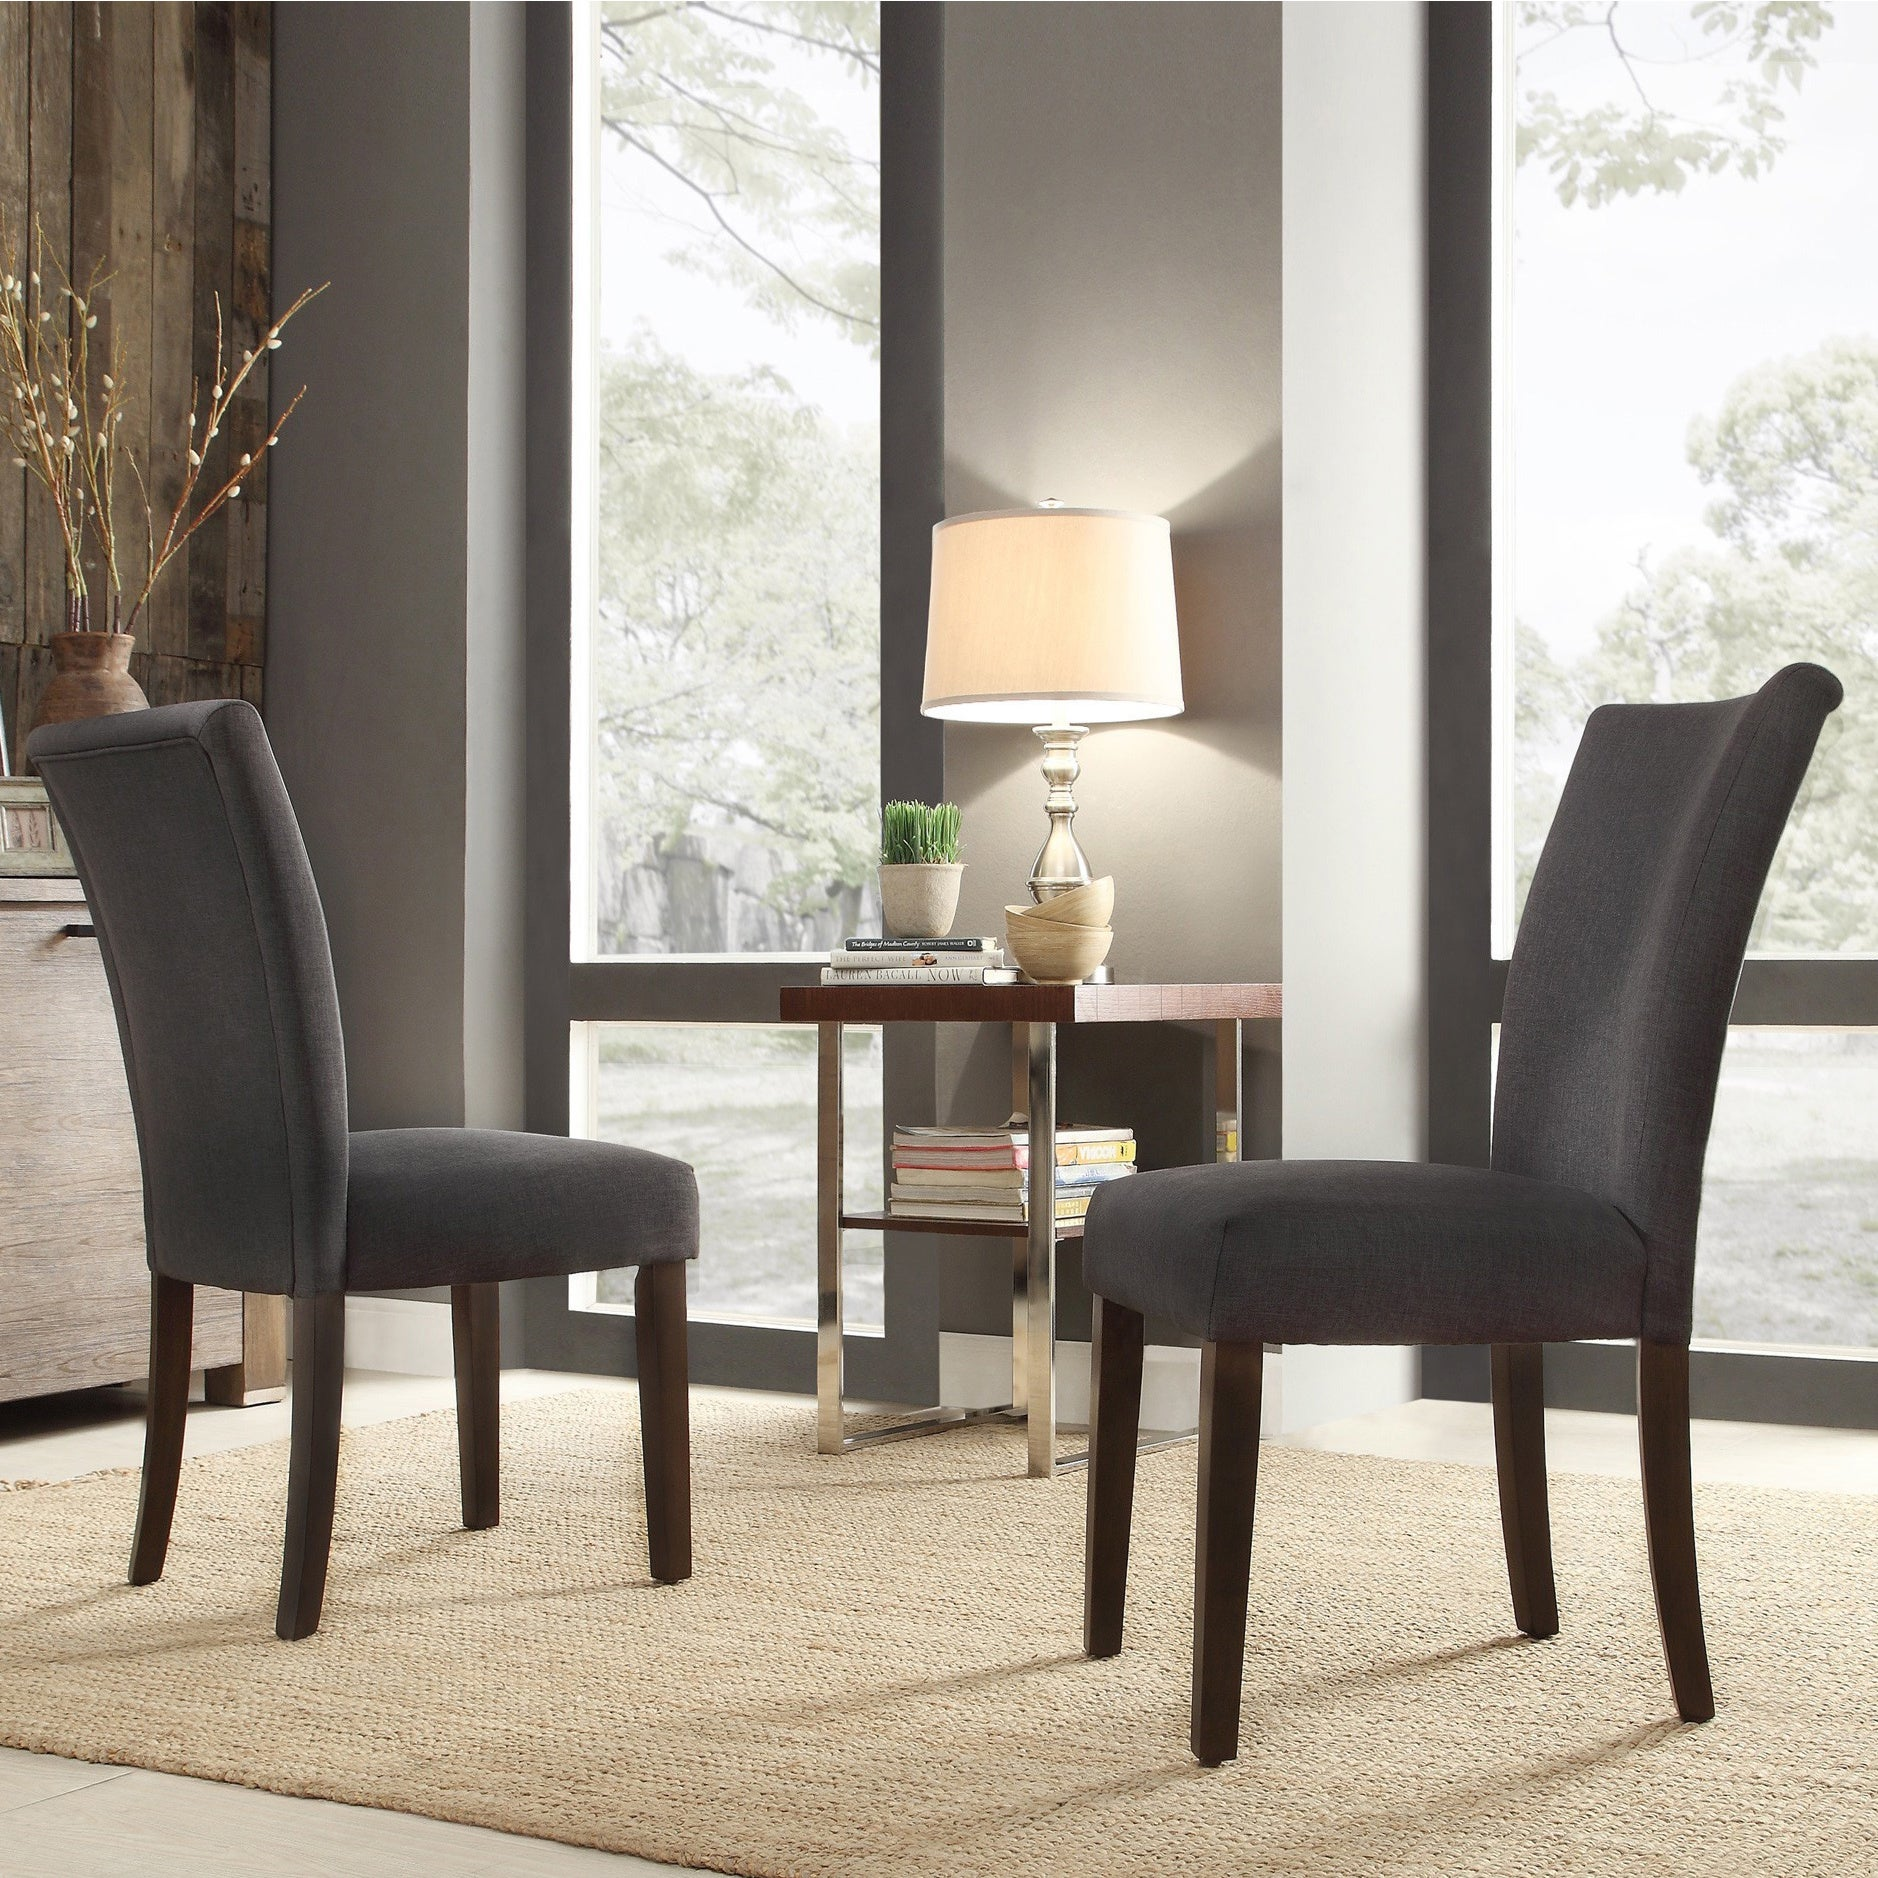 Catherine Parsons Dining Chair (Set of 2) by iNSPIRE Q Bo...